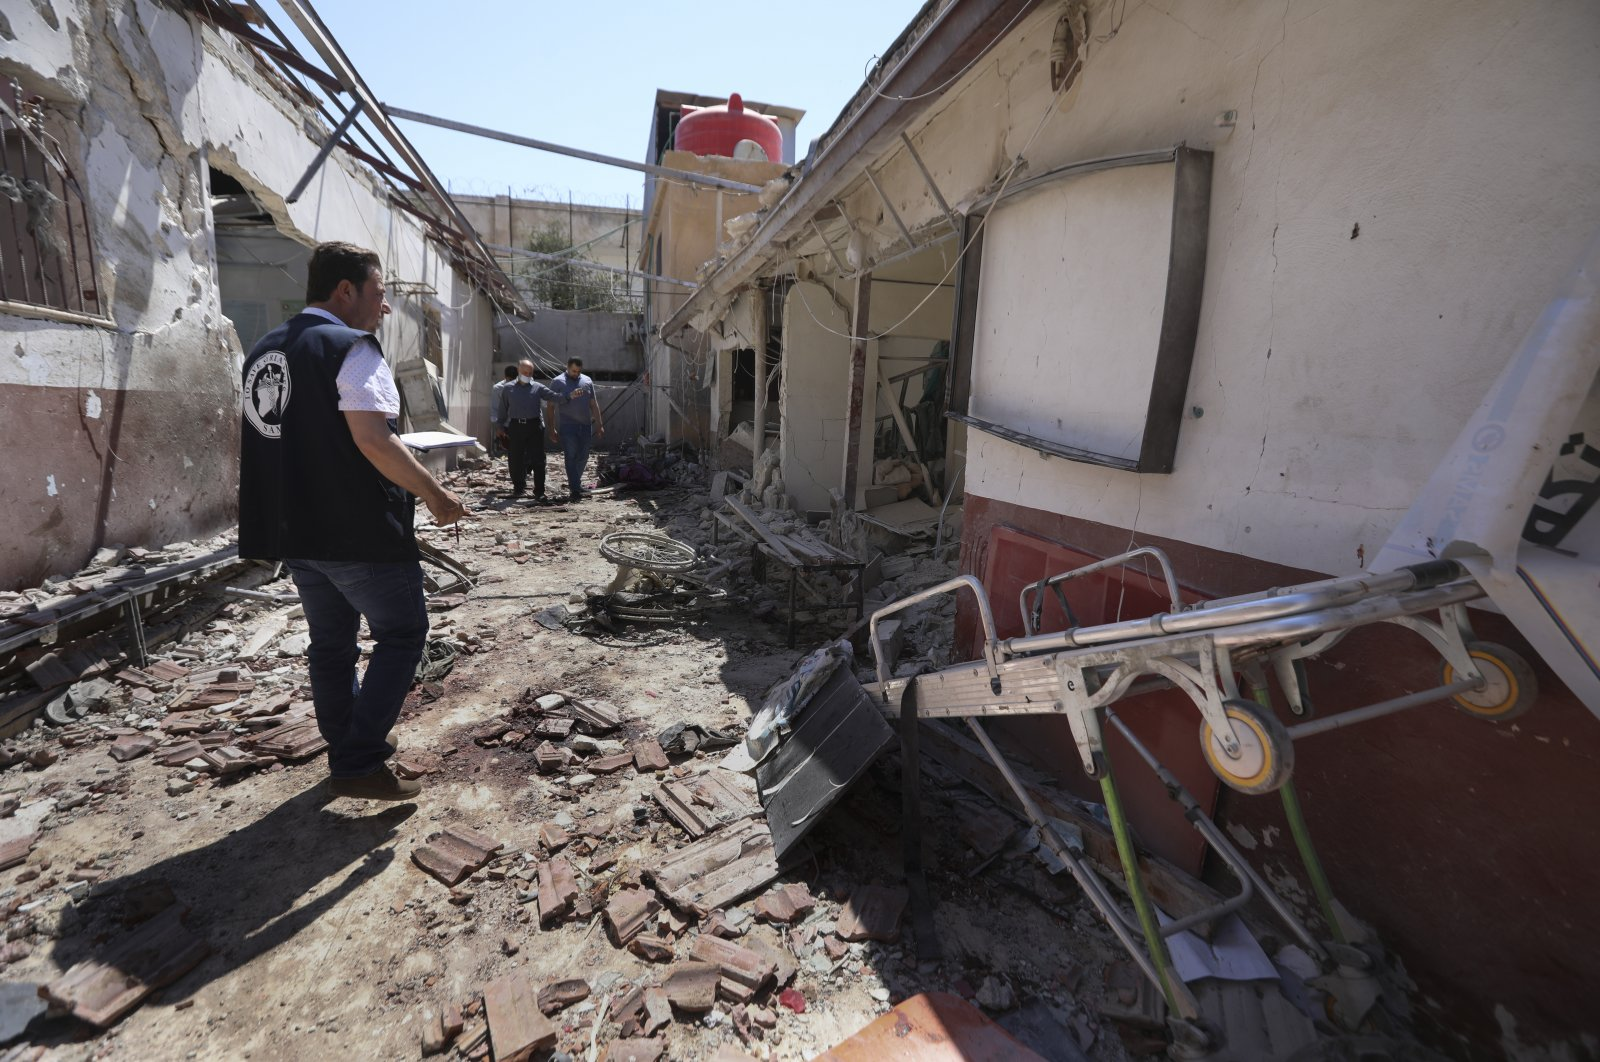 A man walks through a heavily damaged hospital hit by YPG/PKK terrorists in the city of Afrin, Syria, June 13, 2021. (AP Photo)